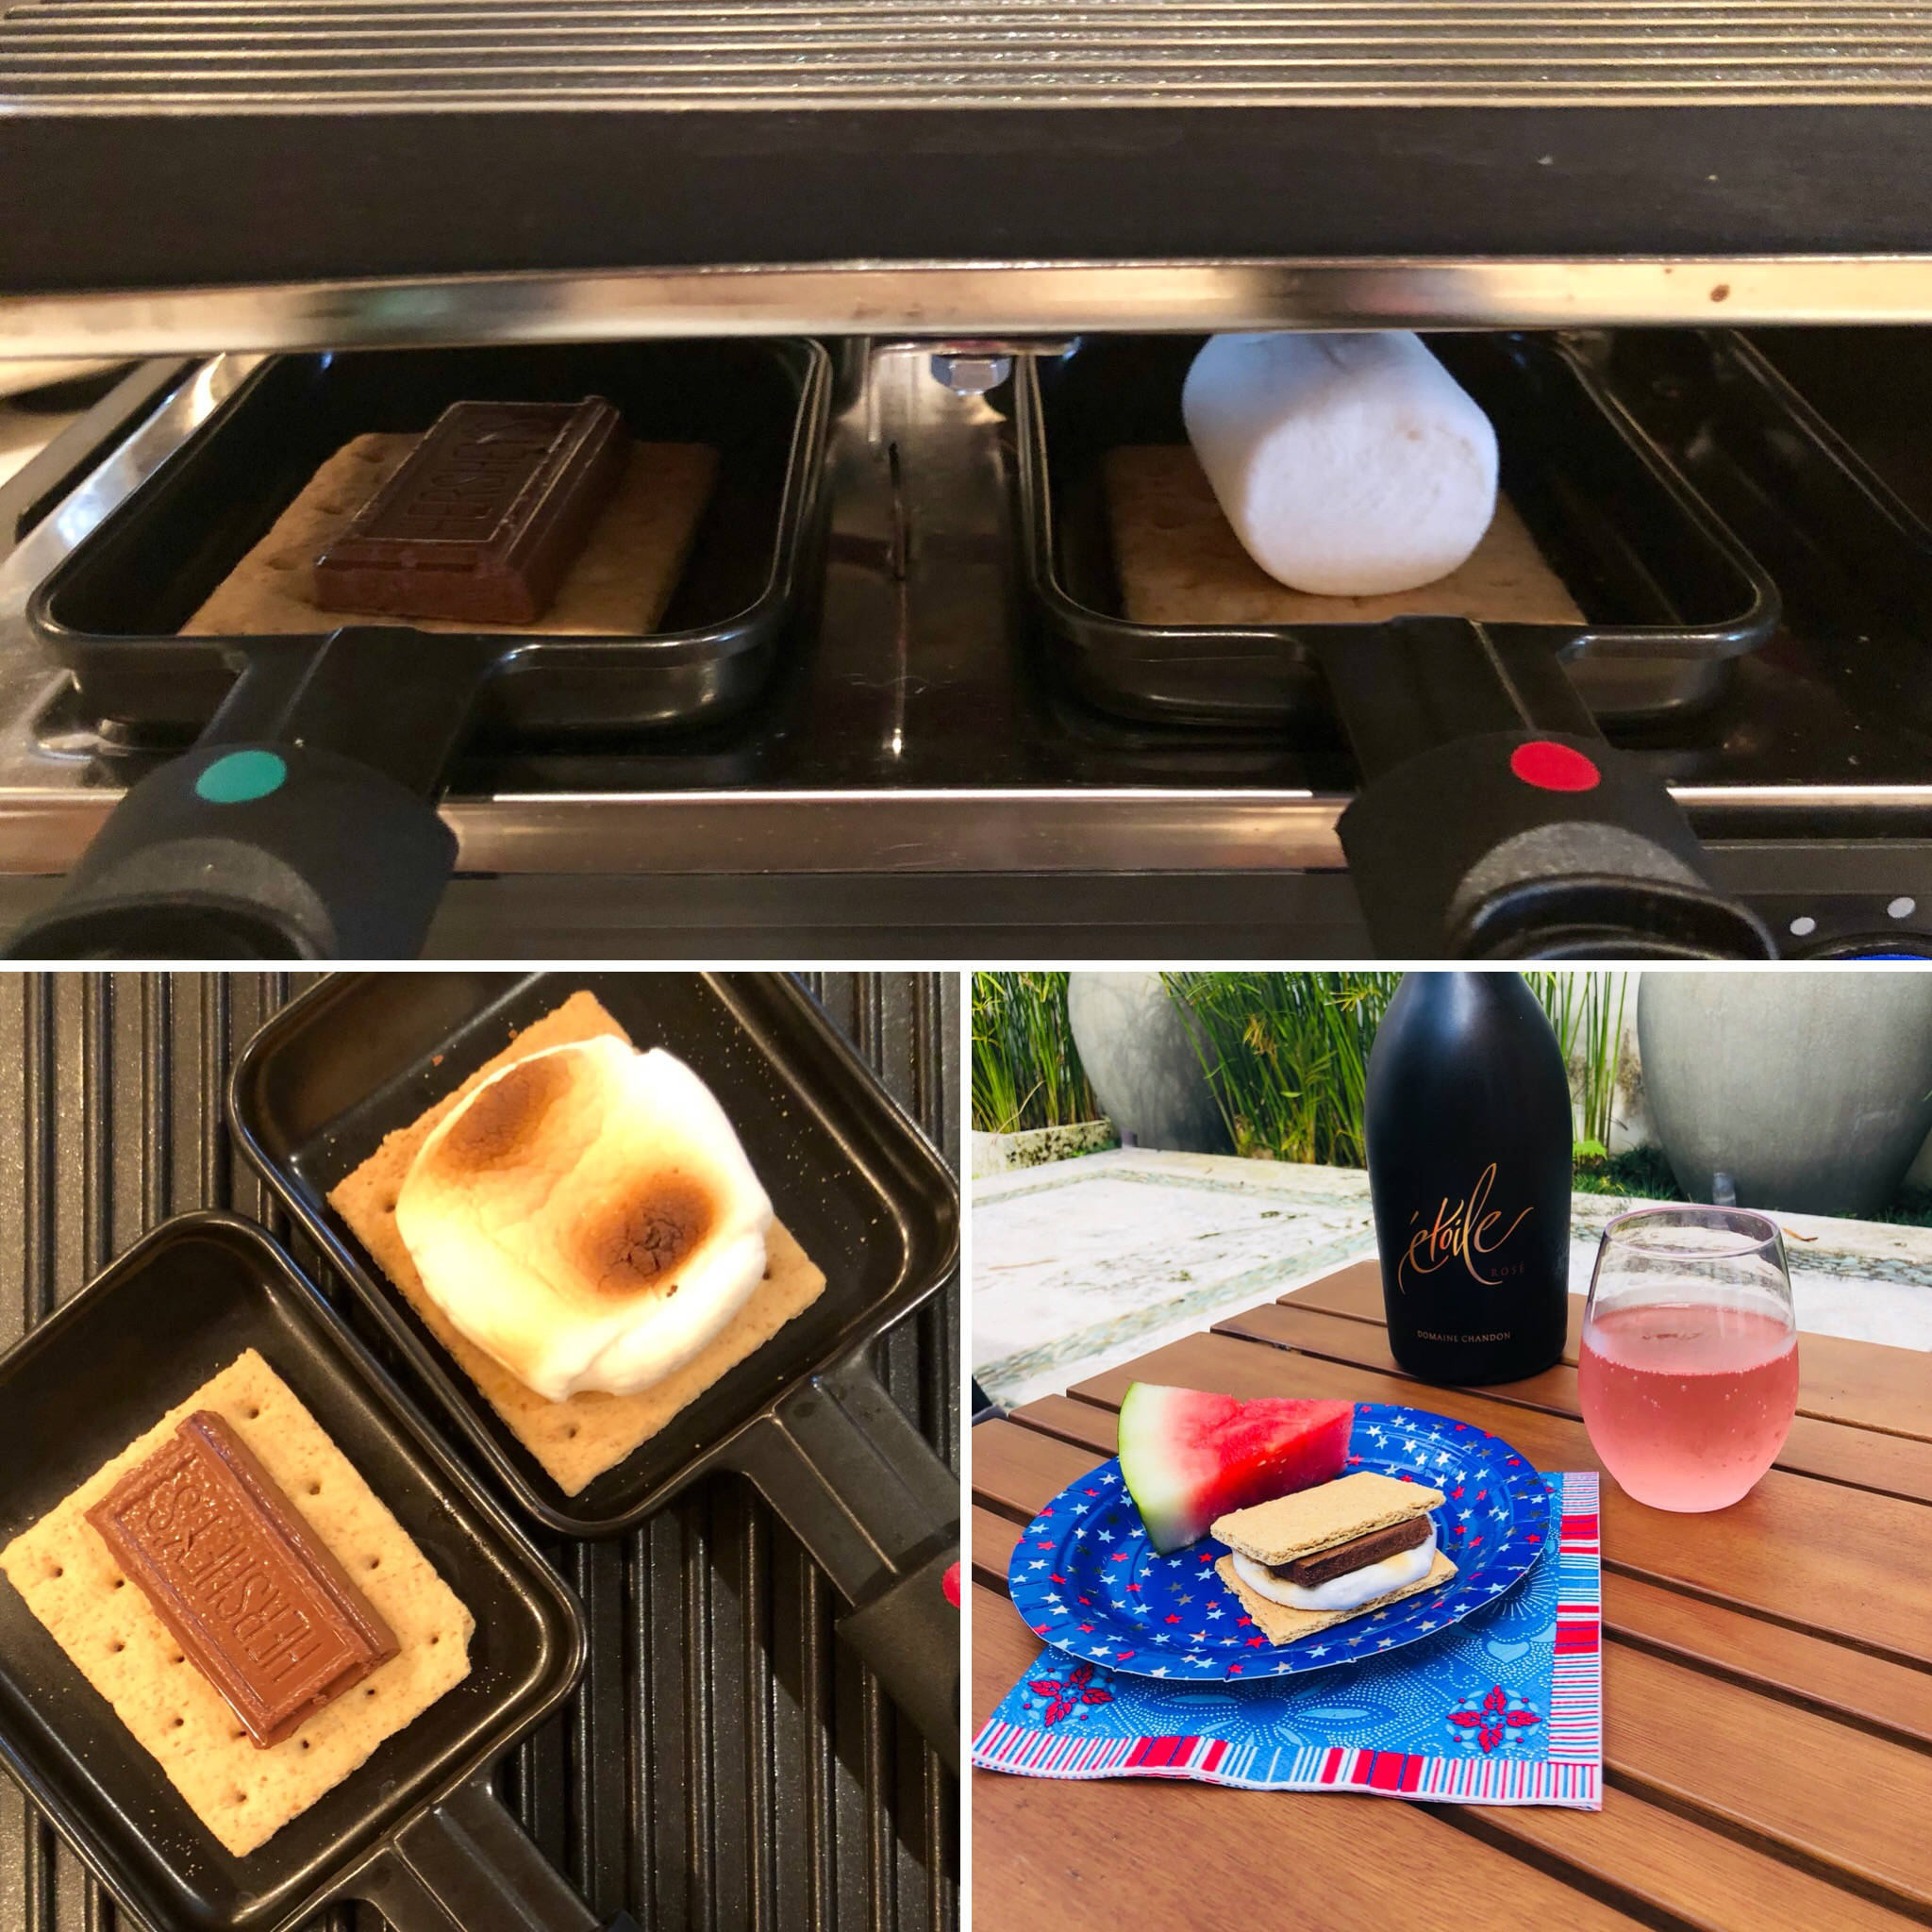 We've made dessert on our  Raclette . It expertly toasted up the marshmallows and melted our chocolate for some scrumptious s'mores using the little coupelle pans. And nobody got a stick in the eye.